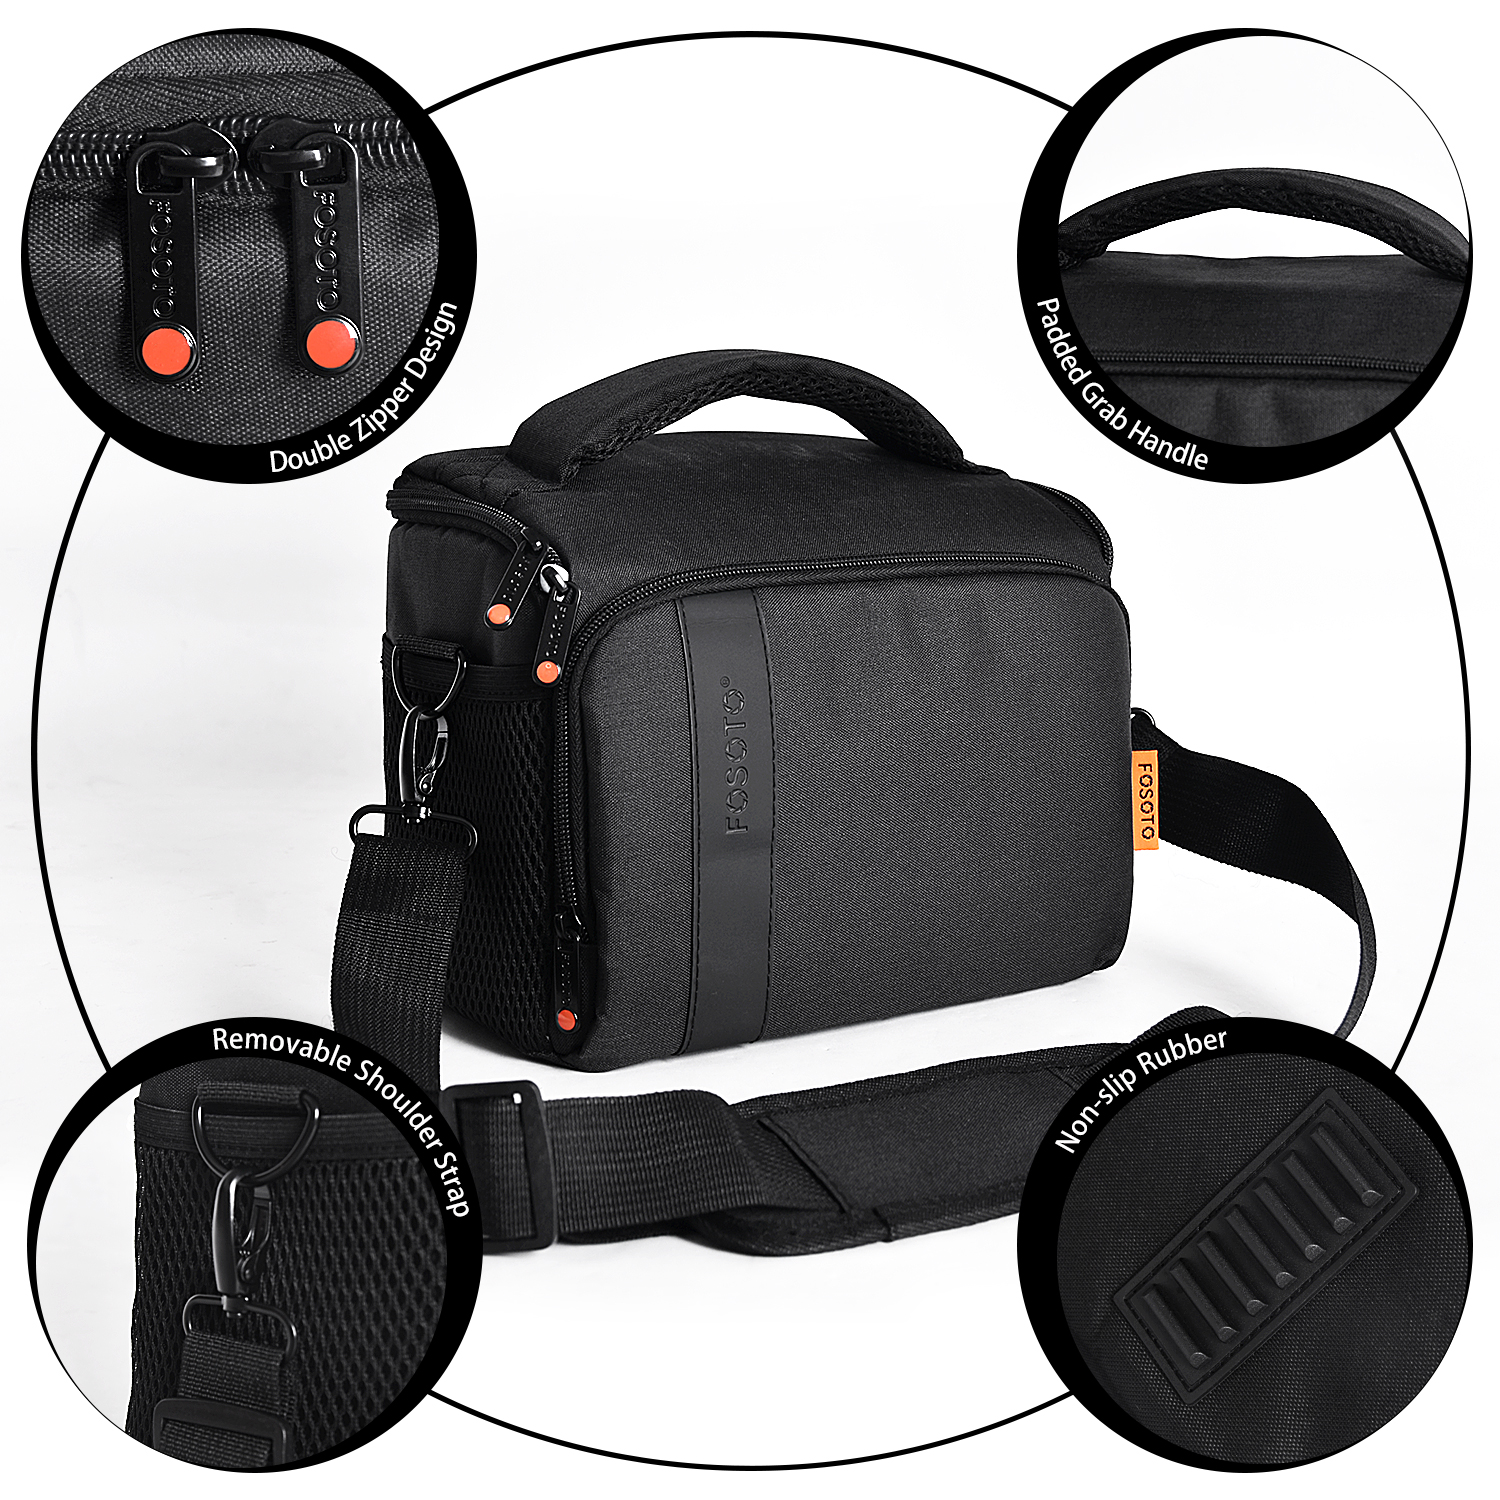 SYF/&DJN Male Waterproof Photography Camera Shoulder Bag Fashion Canvas Student Crossbody Lens Cases for Canon Nikon//Sony